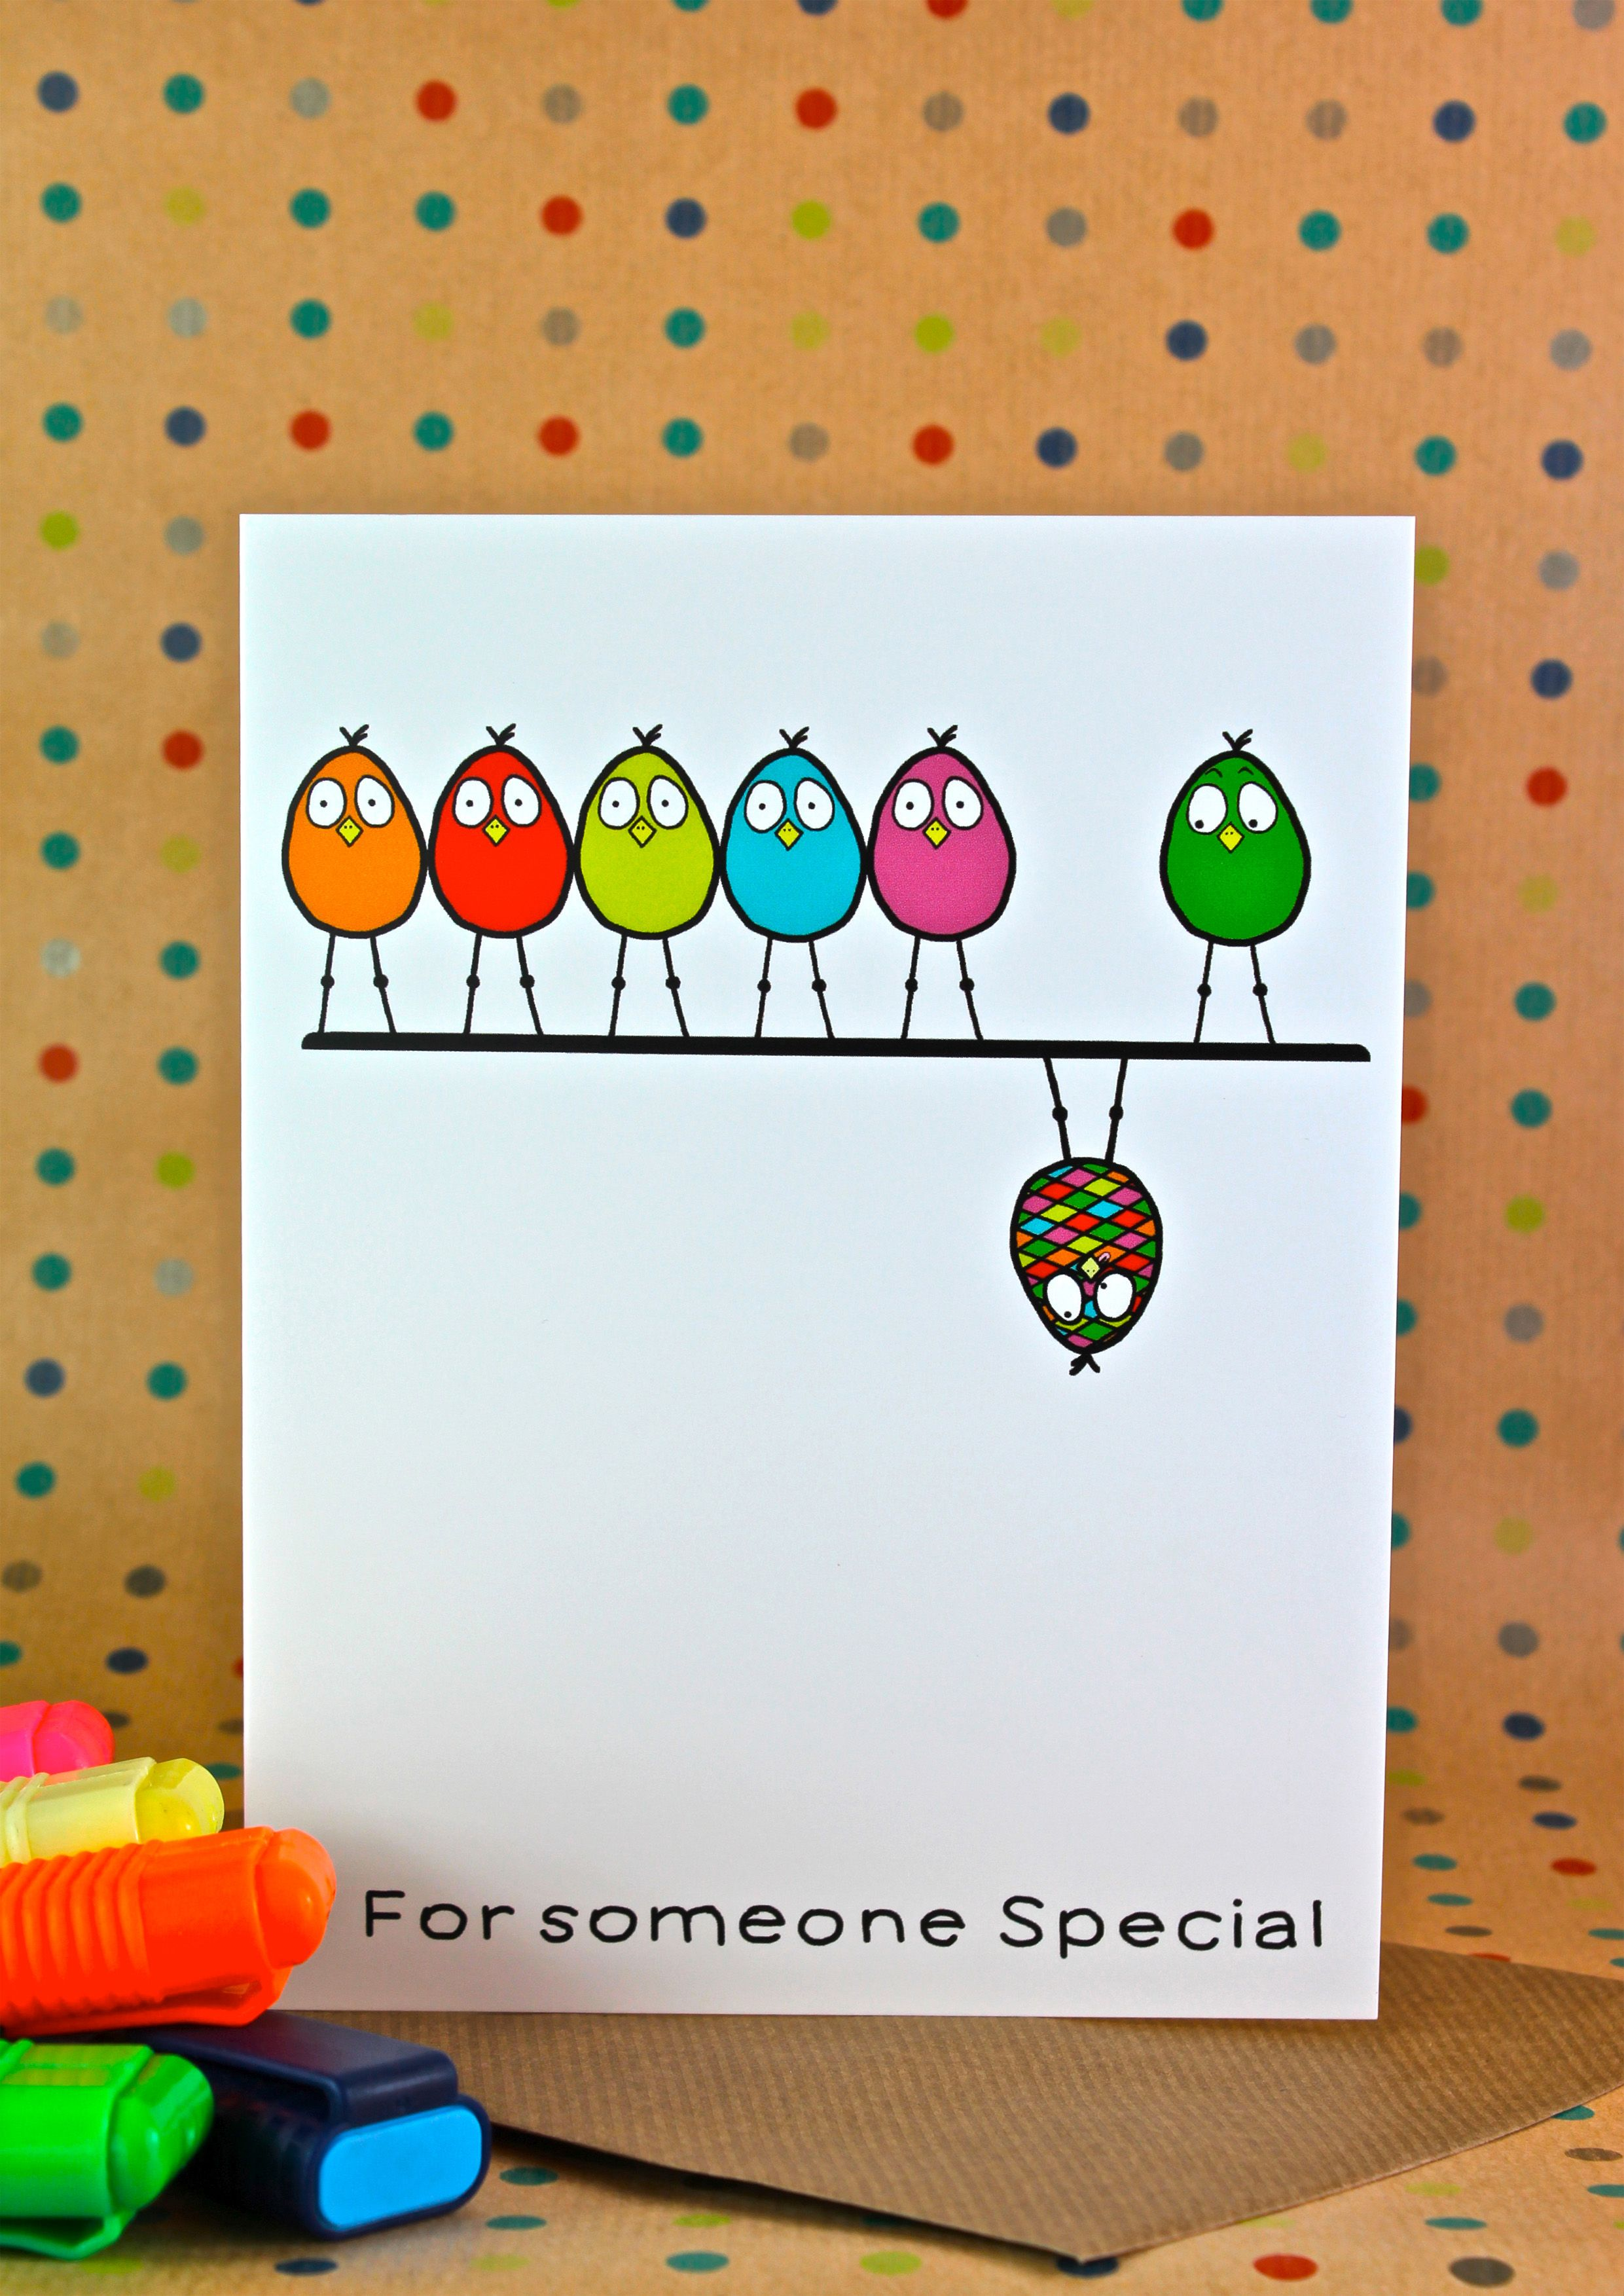 Cool Someone Special Greeting Card A Funny And Humorous Hand Drawn Funny Birthday Cards Online Unhofree Goldxyz